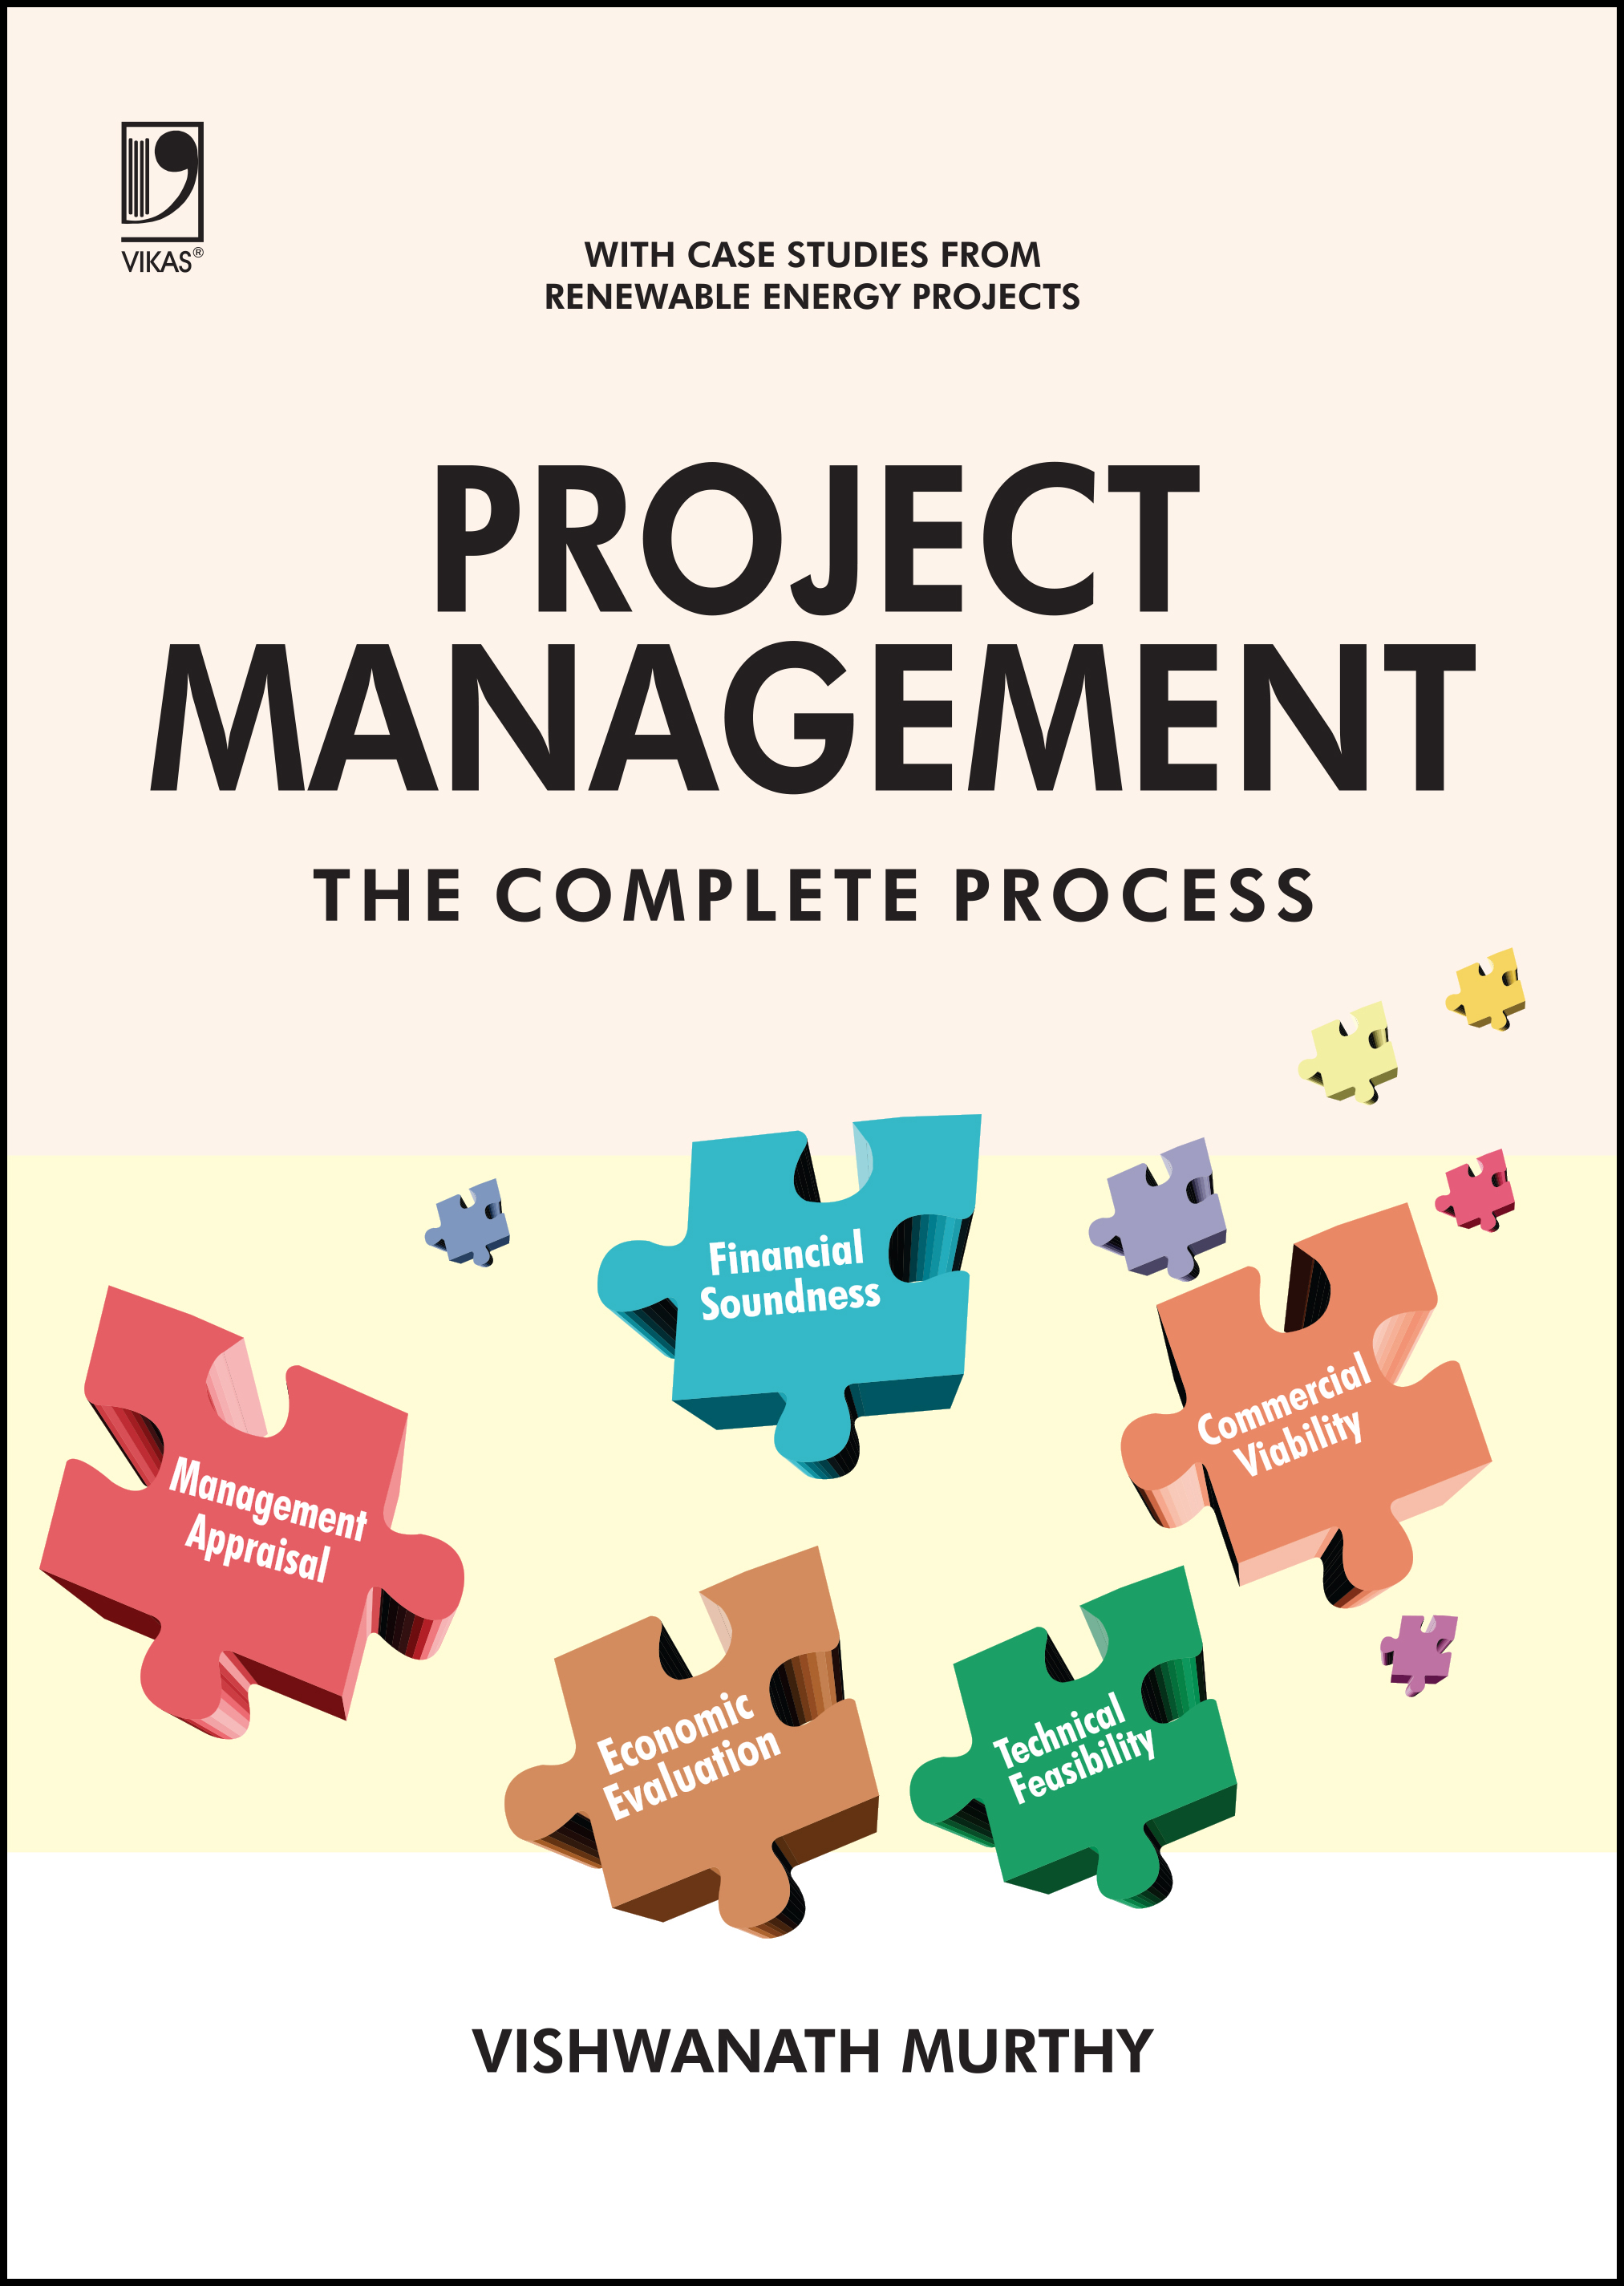 Project Management – The Complete Process (with Case Studies from Renewable Energy Sector)